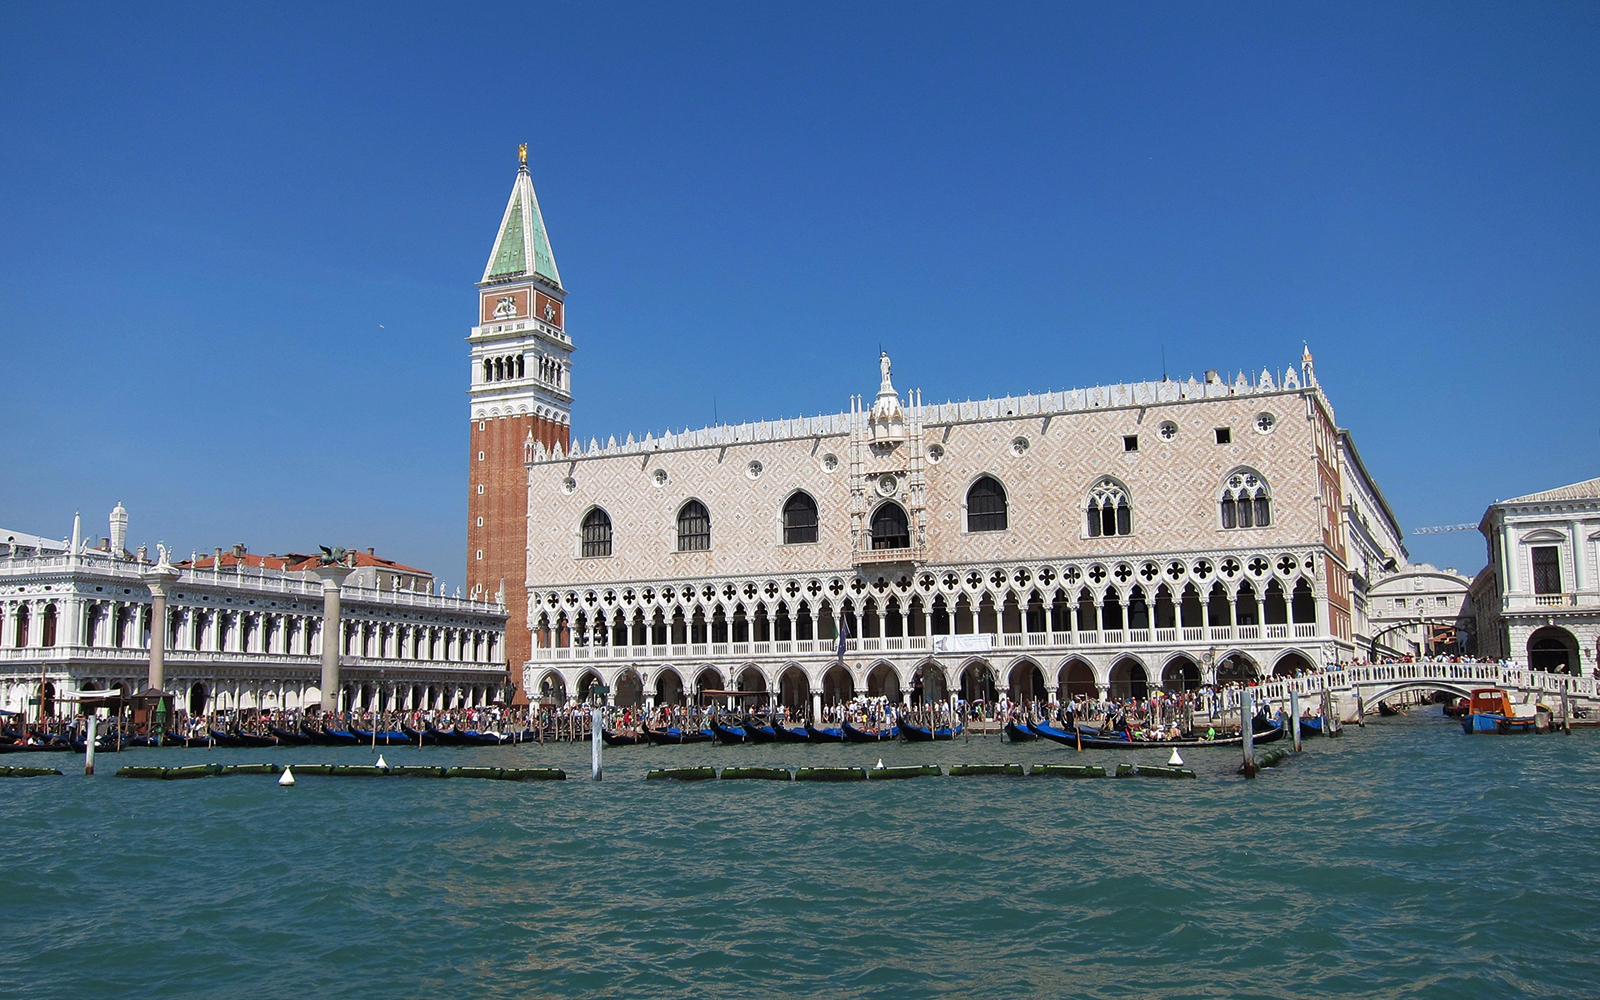 21dda105 aabf 49bf 9310 1875f4c9dade 8586 venice museum pass and doge palace tickets 03